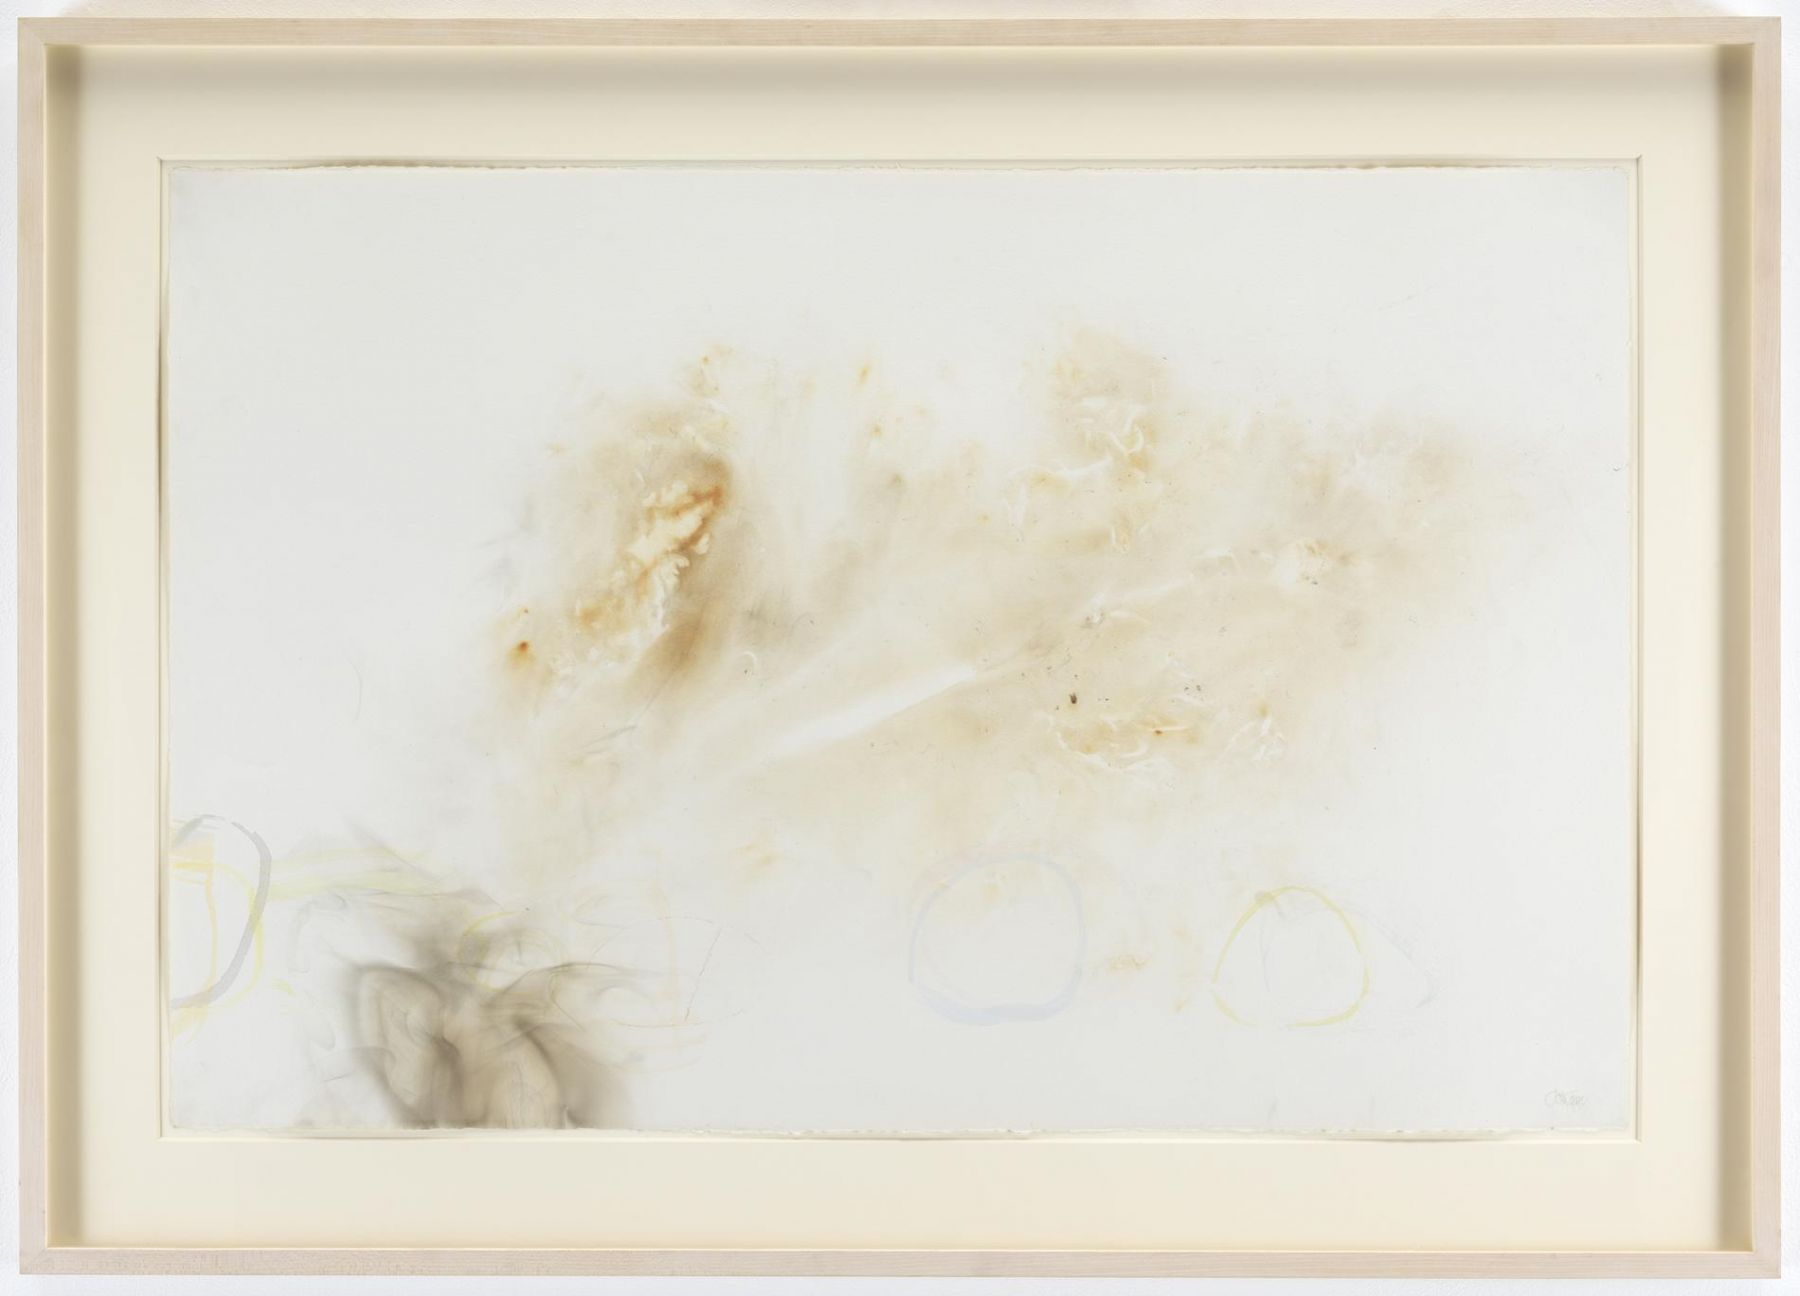 , JOHN CAGE River Rocks and Smoke, 4/12/90, #11, 1990 Watercolor on Waterford cold press 260 lb. paper prepared with fire and smoke 26 1/2 x 39 1/2 in. (67.3 x 100.3 cm)